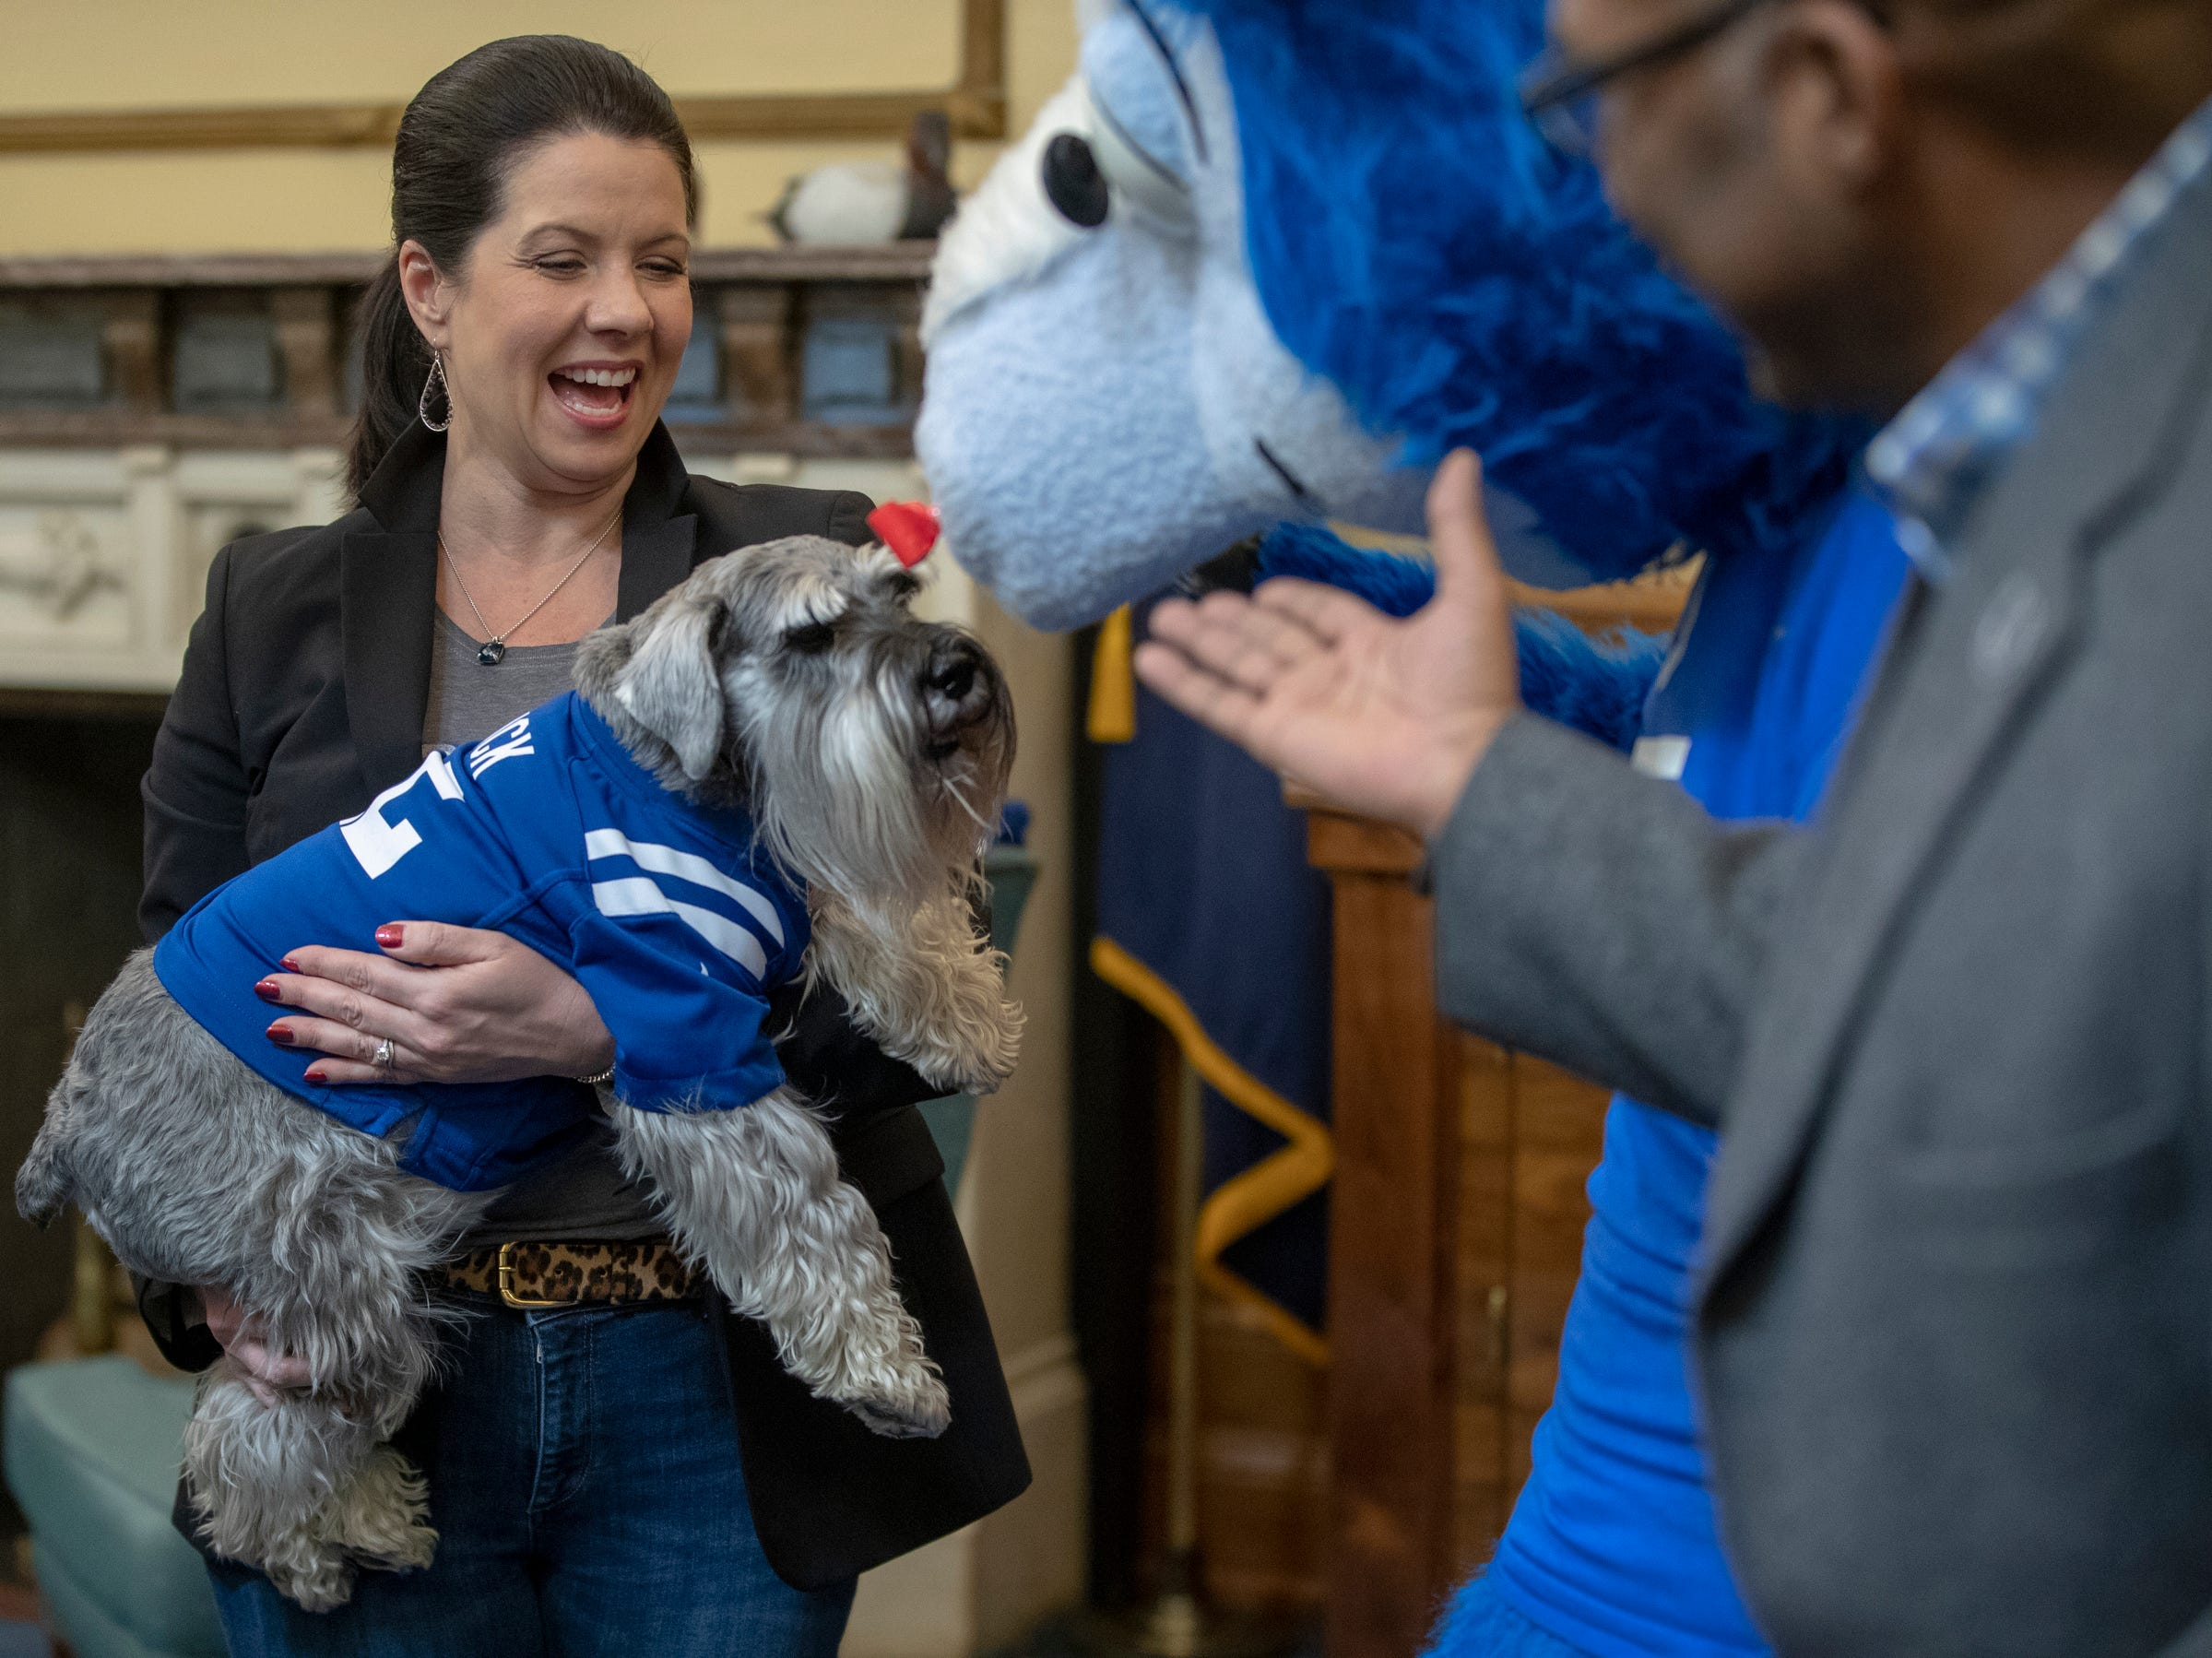 Janet Holcomb holds her family dog Henry, during a visit by Blue, the Colts mascot to the Indiana Statehouse, Indianapolis, Wednesday, January 3, 2019.